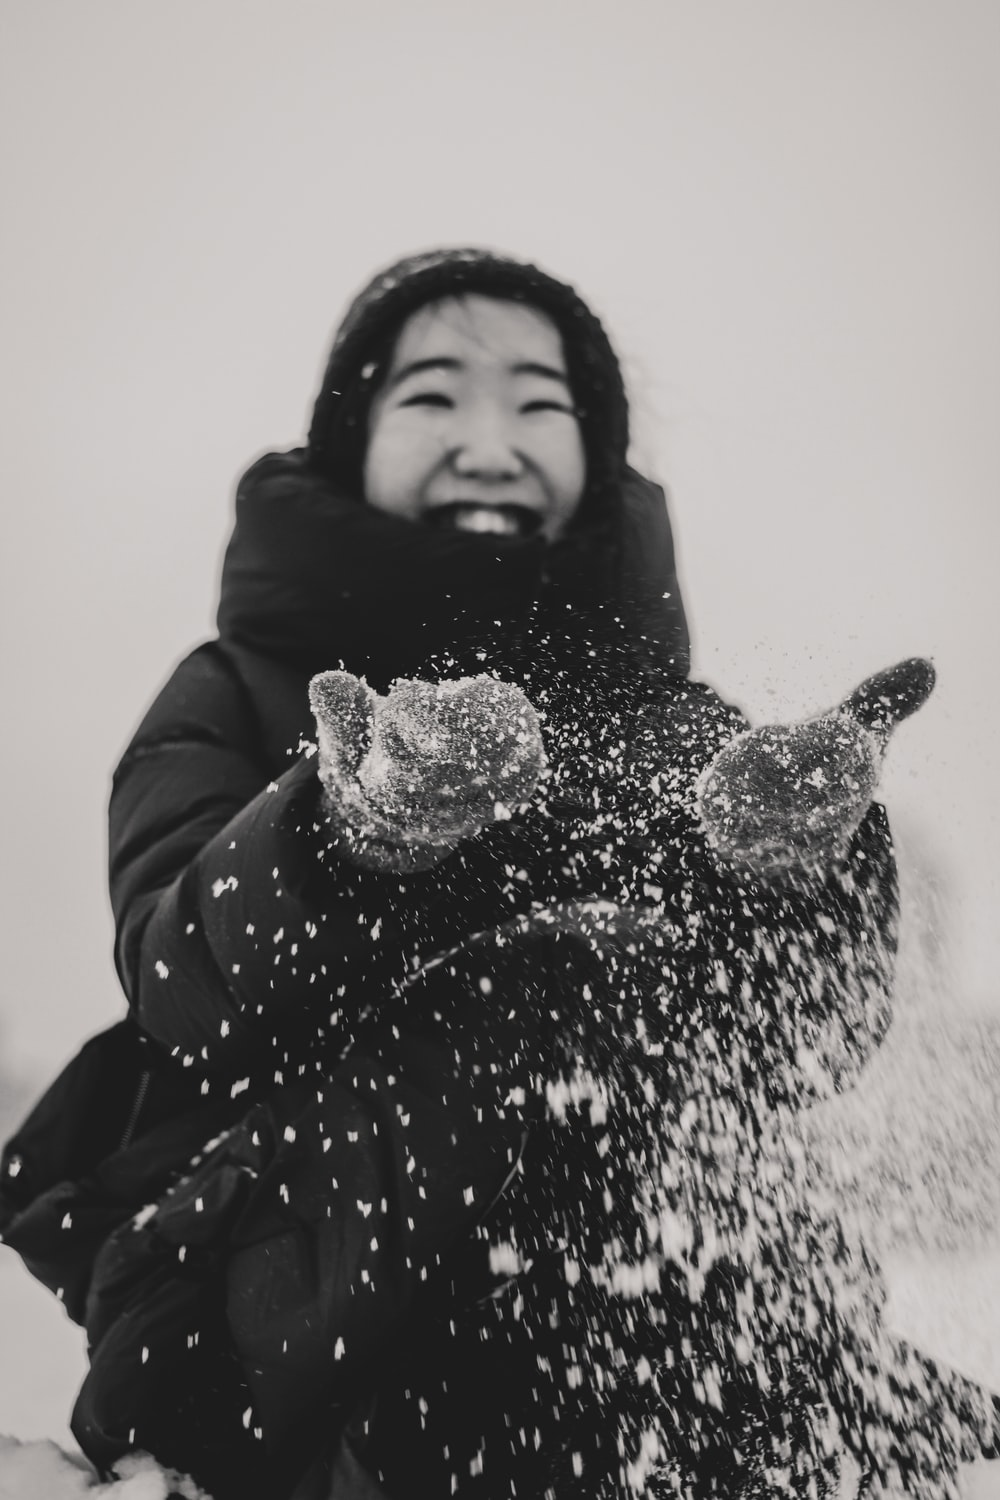 grayscale photography of woman playing with snow